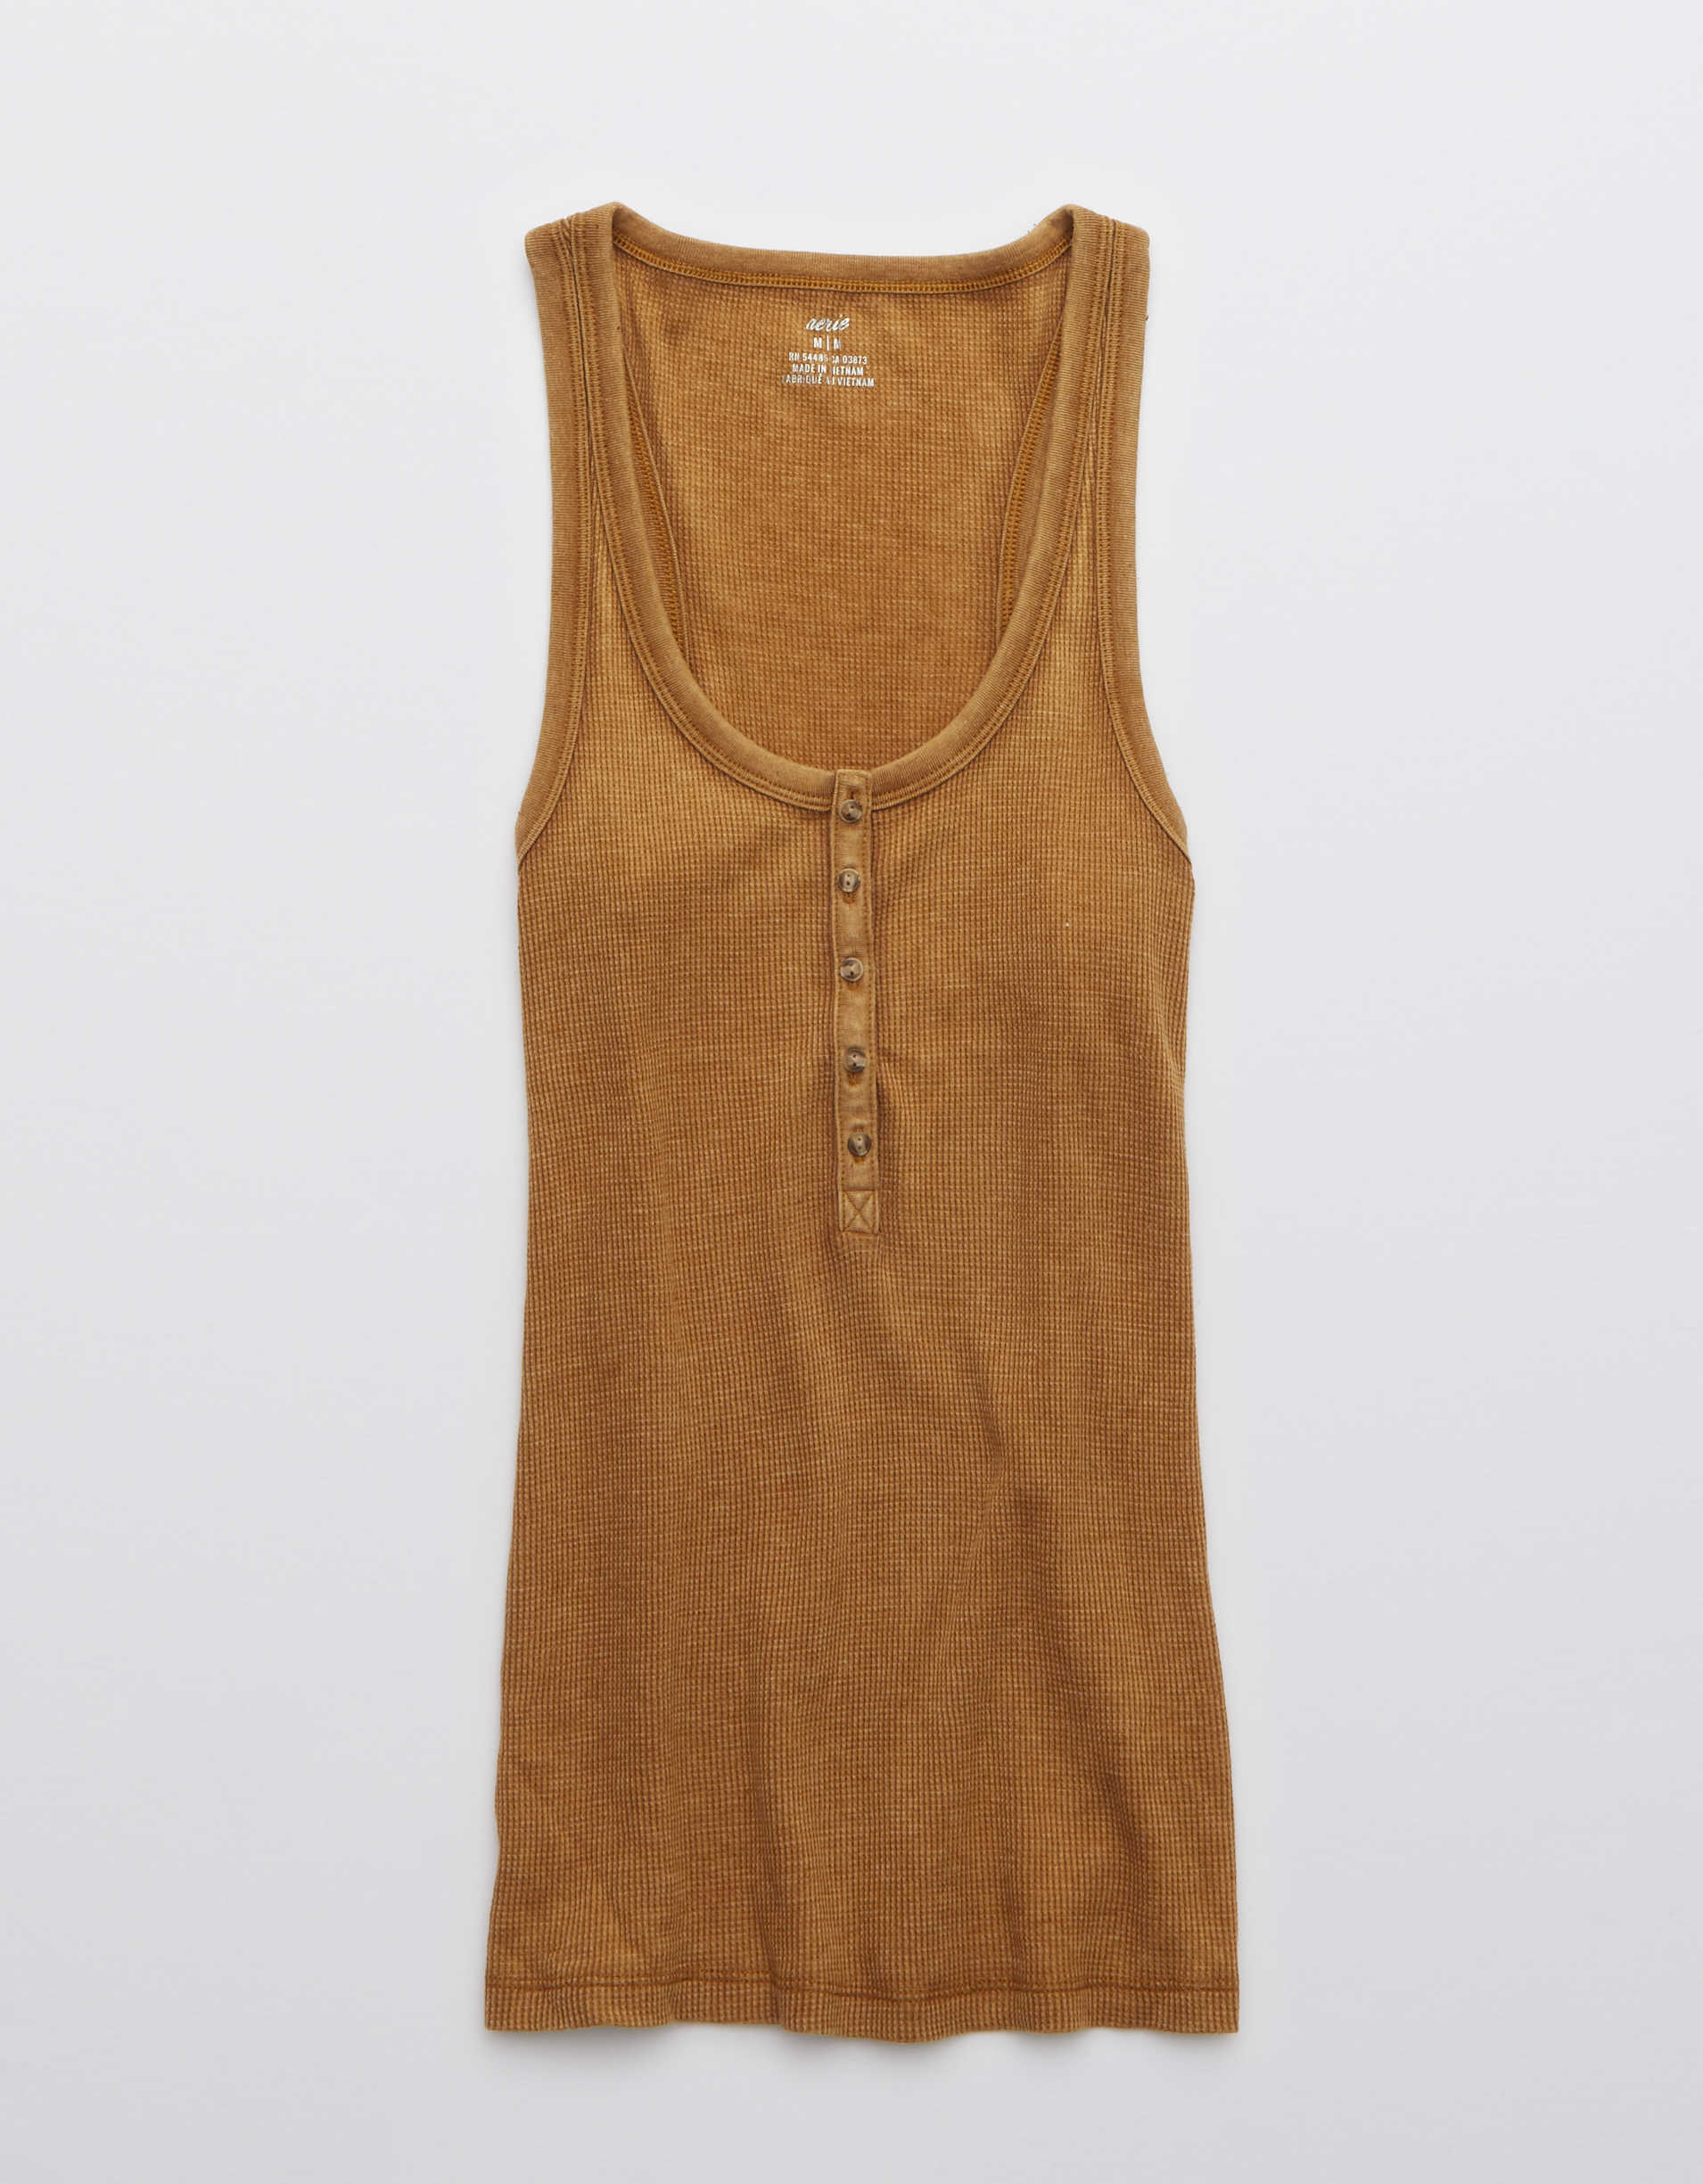 Aerie No BS Waffle Henley Tank Top